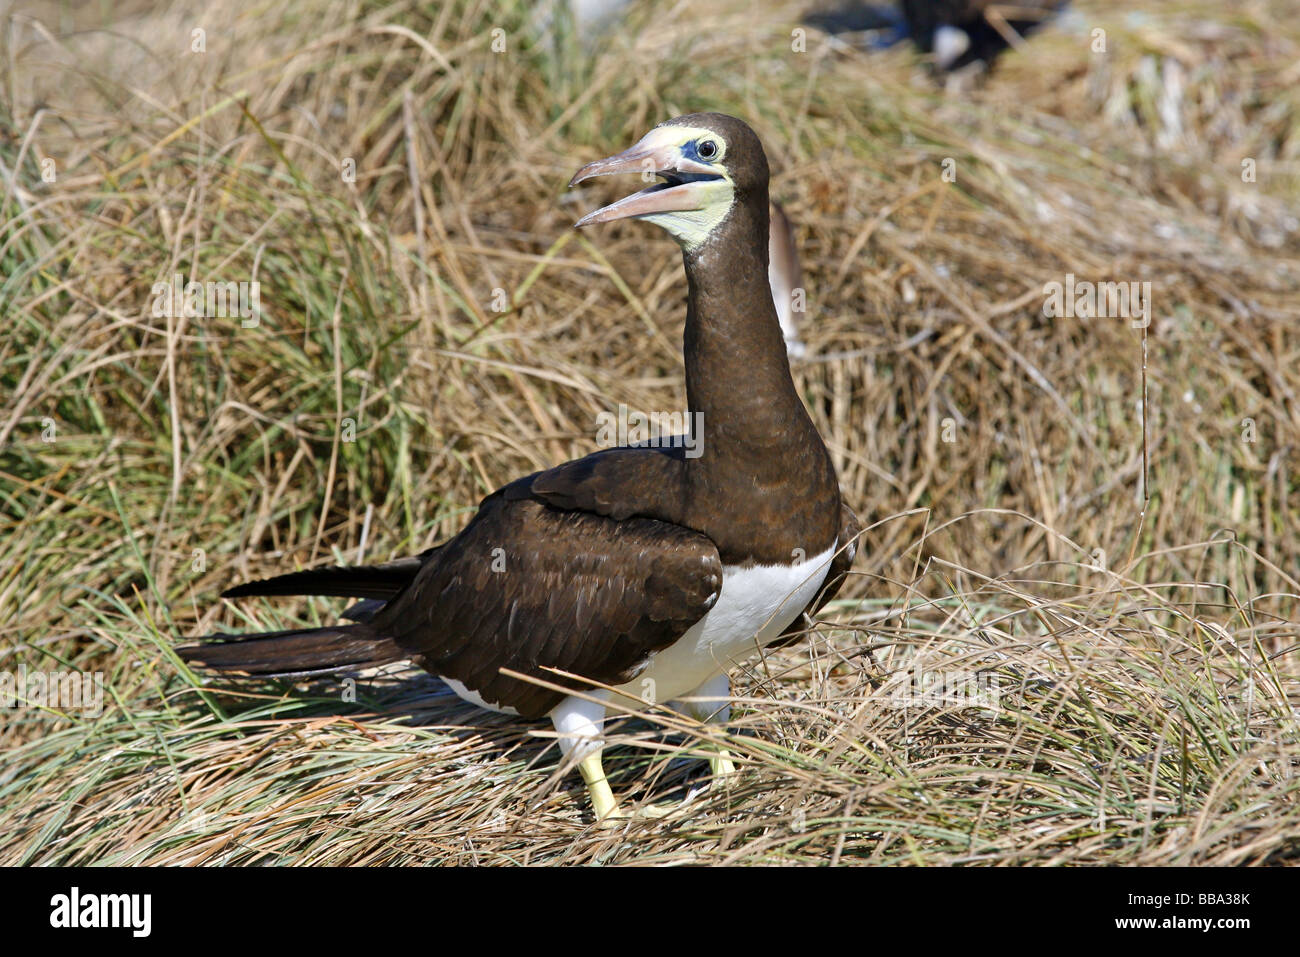 Brown Booby cooling itself by gular fluttering - Stock Image